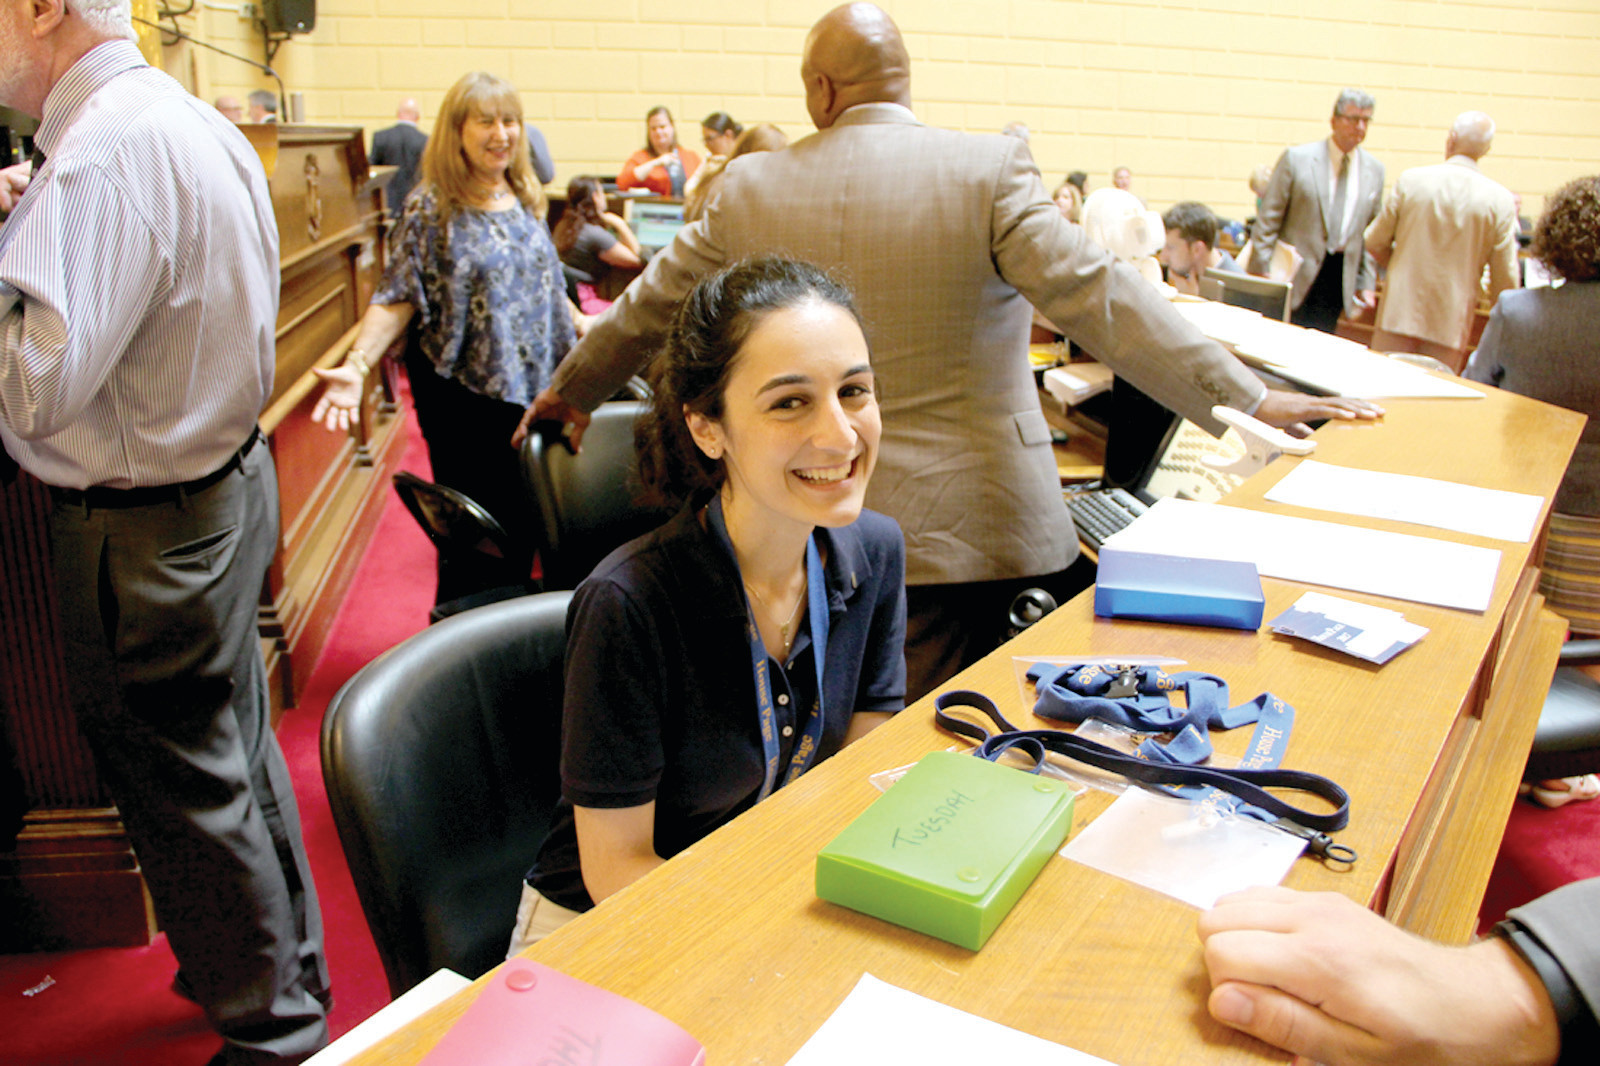 AHEAD OF THE GAME: Allie Saker, of Johnston, began her work as a page at 16. Now 21, she recently finished up her last session as a head page, moving up through the ranks due to her dedication and positive attitude.